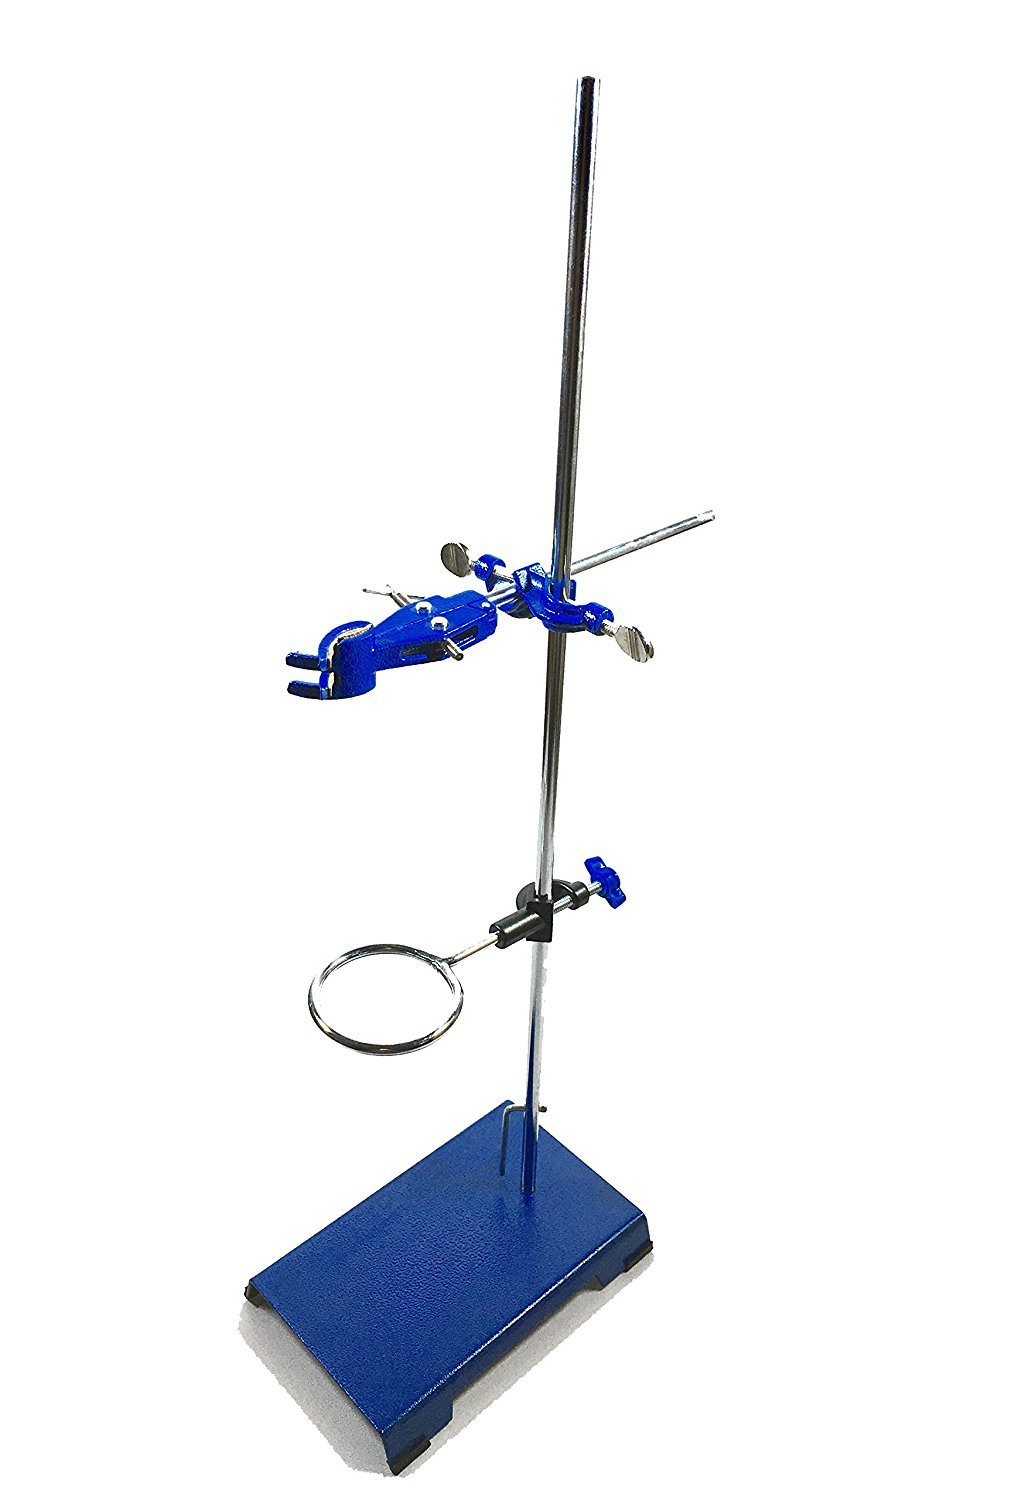 Sciencent Support Stand 8'' x 5'' Coated Base Size - 24'' Corrosion Resistant Rod - Cork Lined Burette Clamp with Boss Head and Retort Ring (2.5'' Dia) by SCIENCENT WITH DEVICE